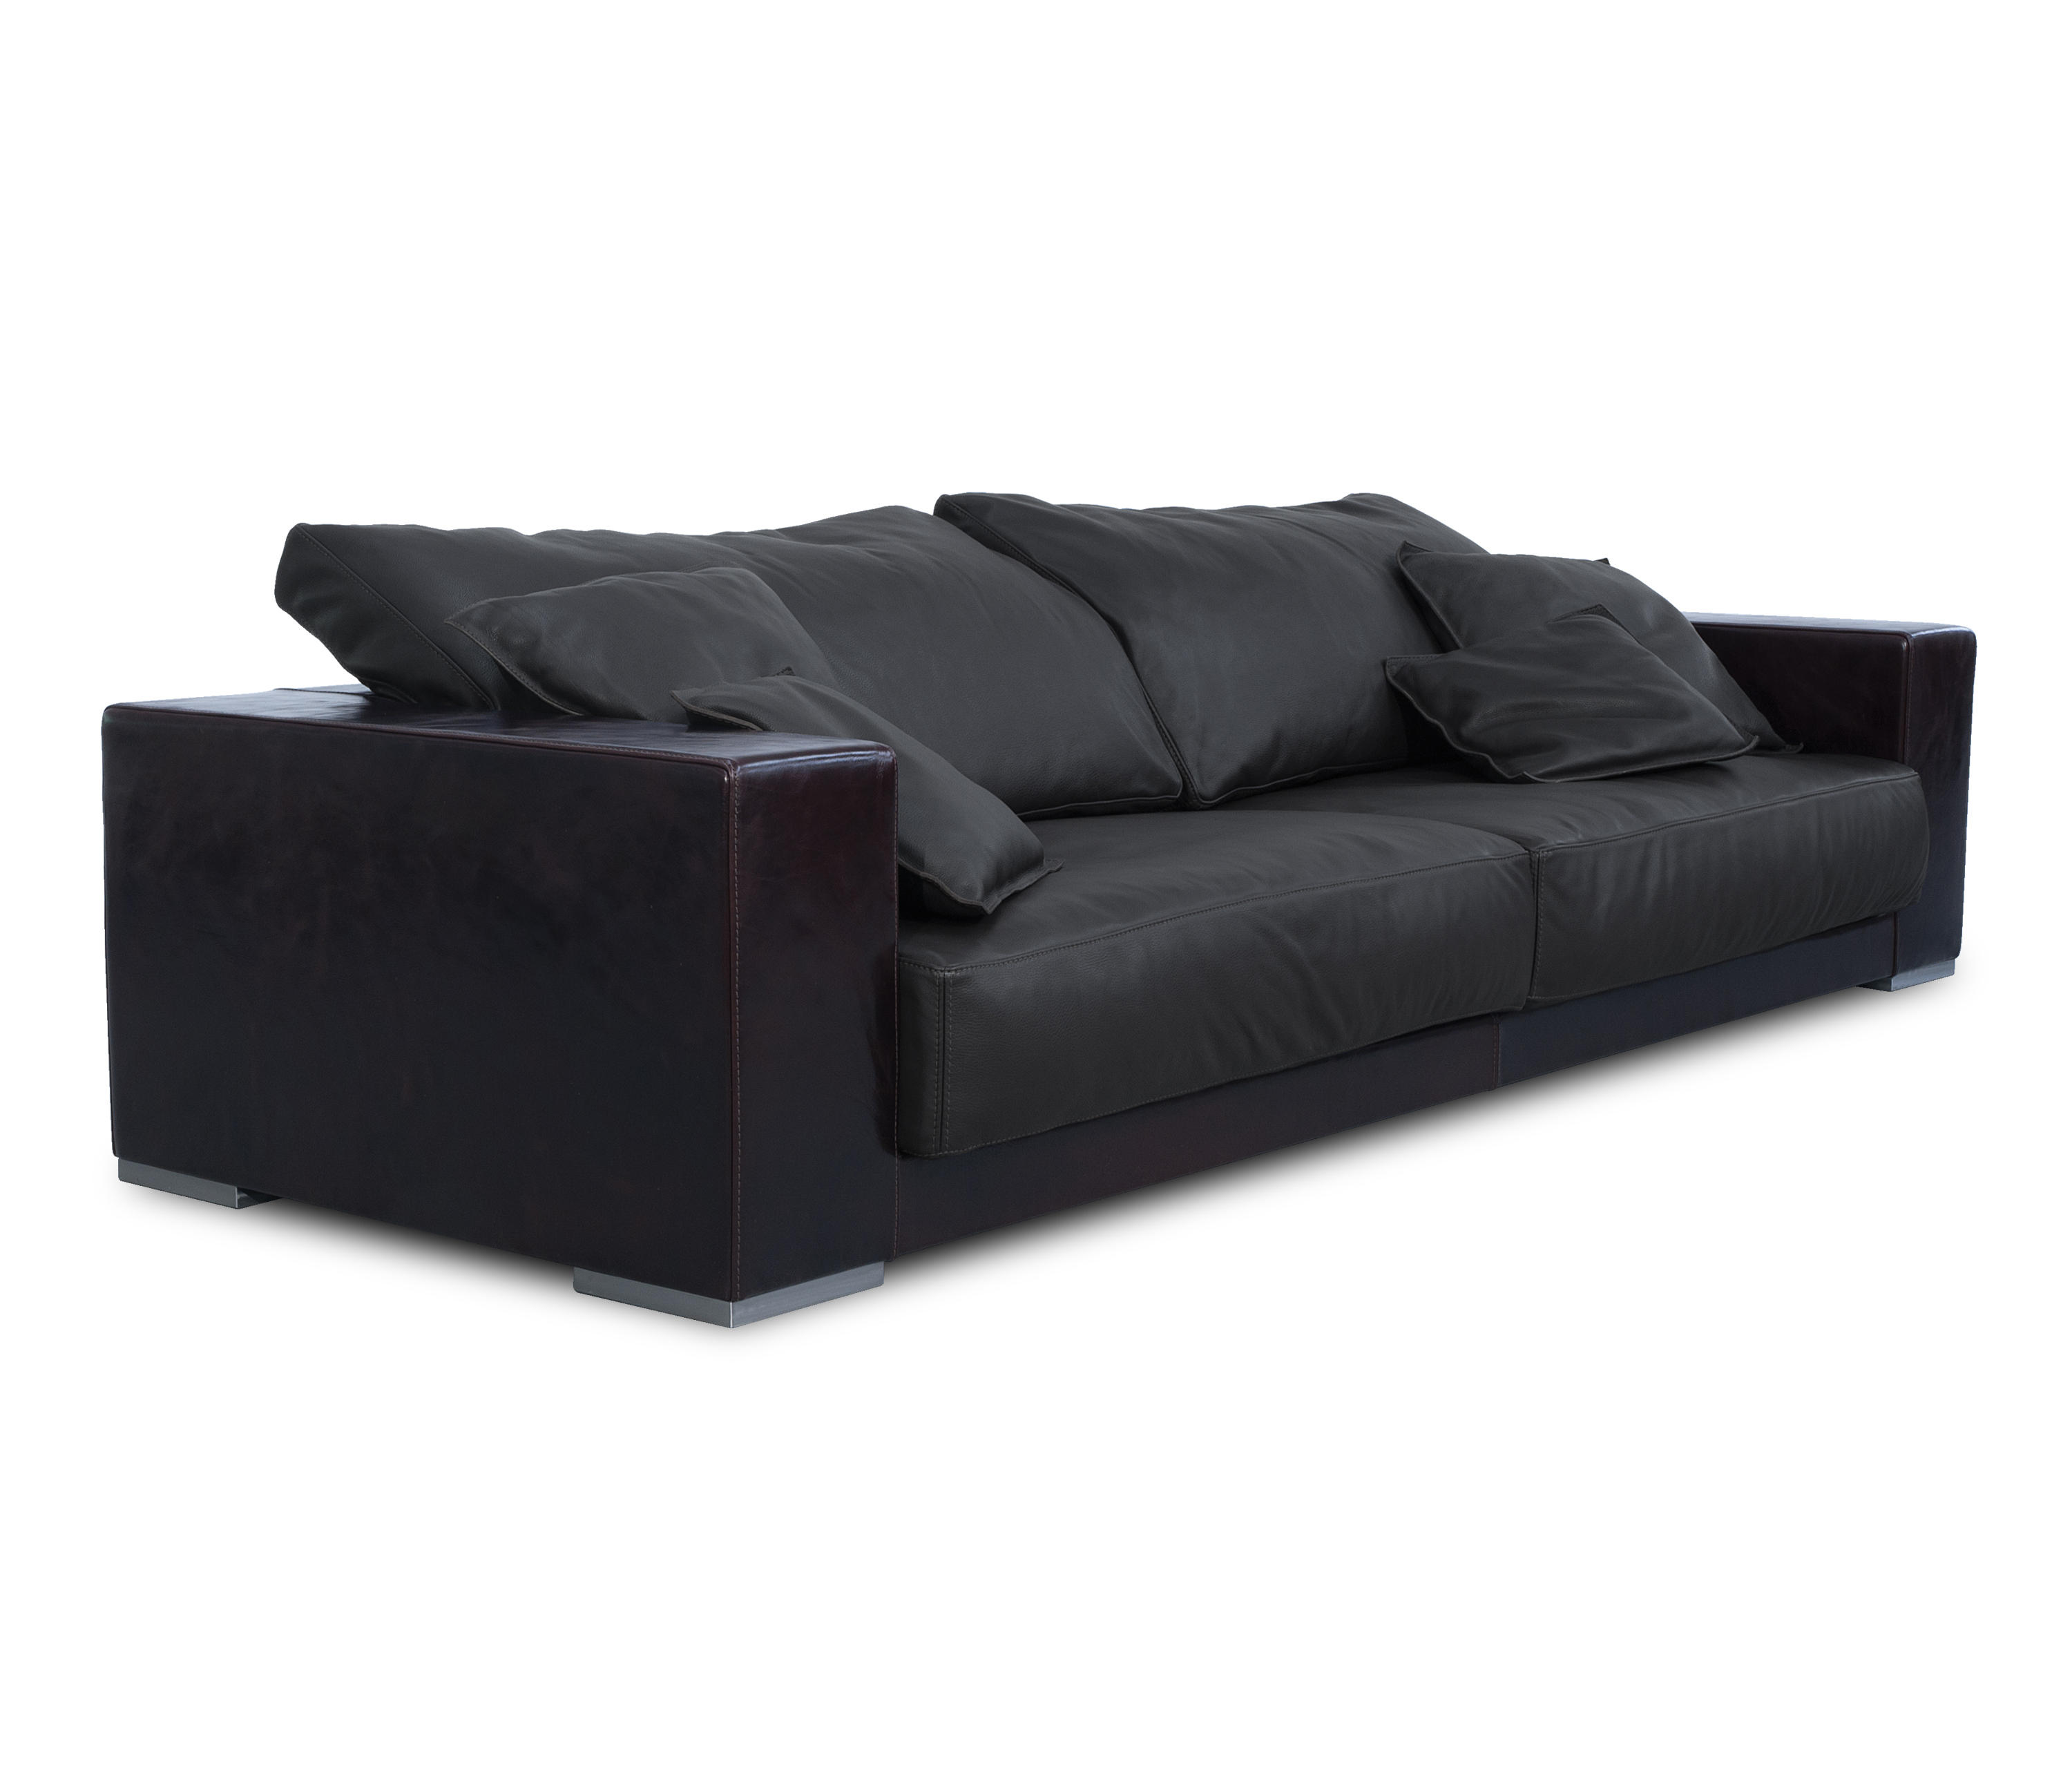 budapest sofa lounge sofas from baxter architonic. Black Bedroom Furniture Sets. Home Design Ideas